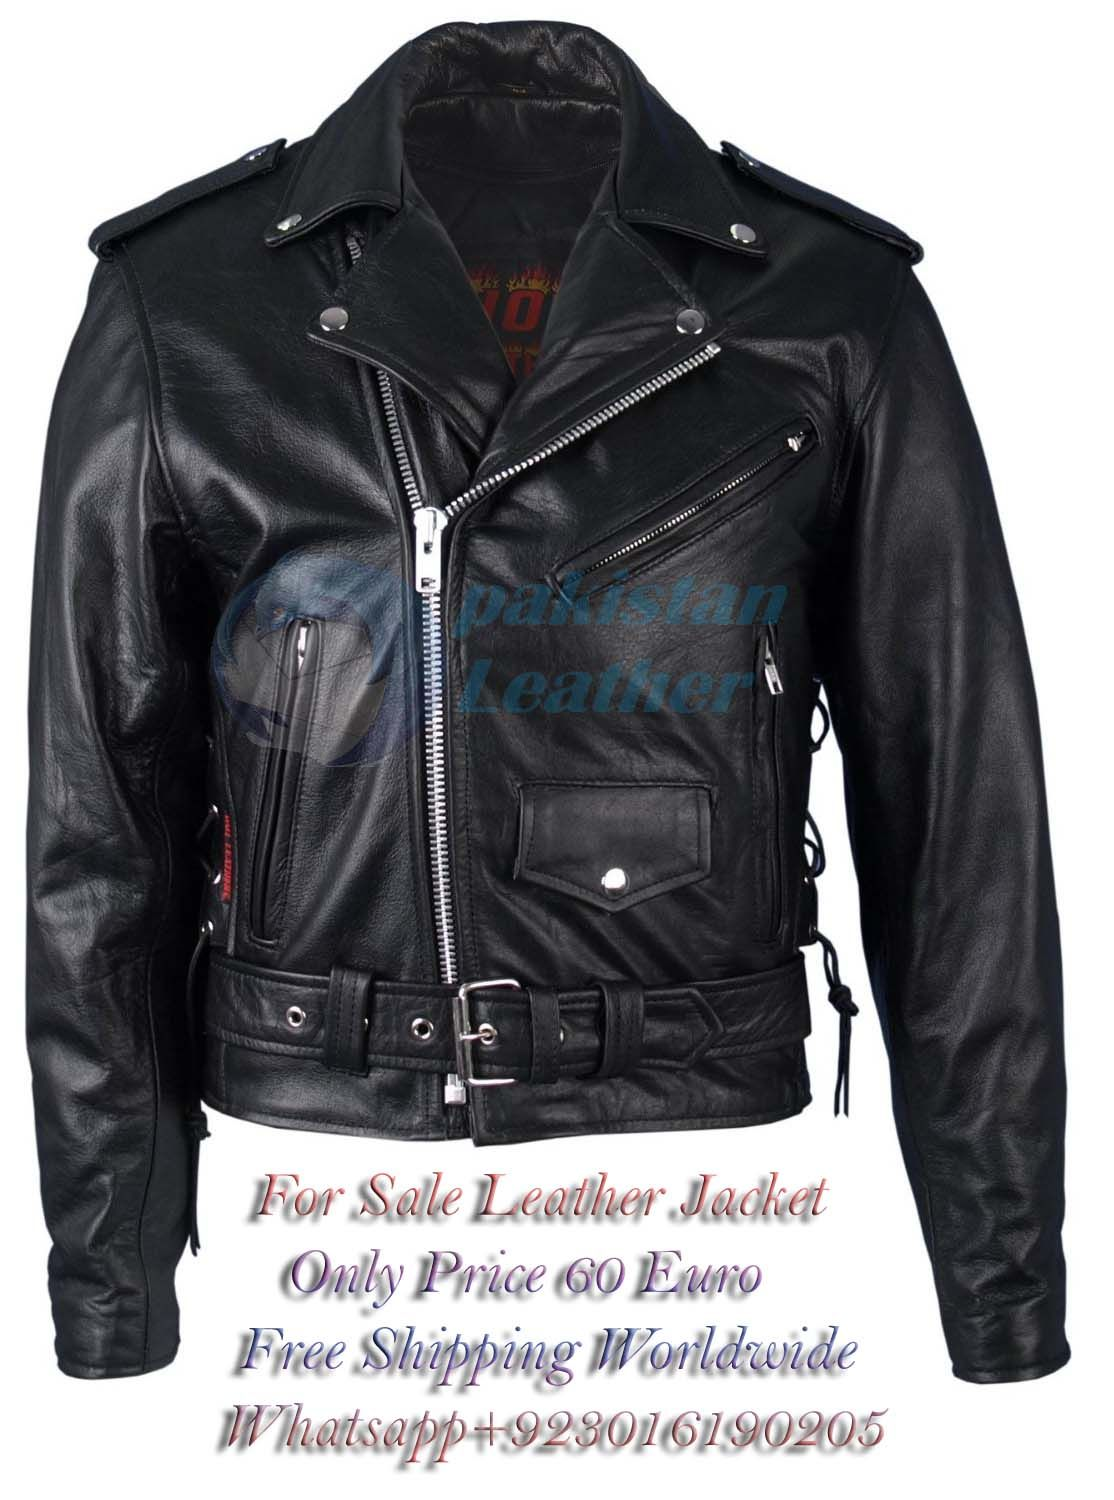 For Sale Leather Jacket You can request us any items of